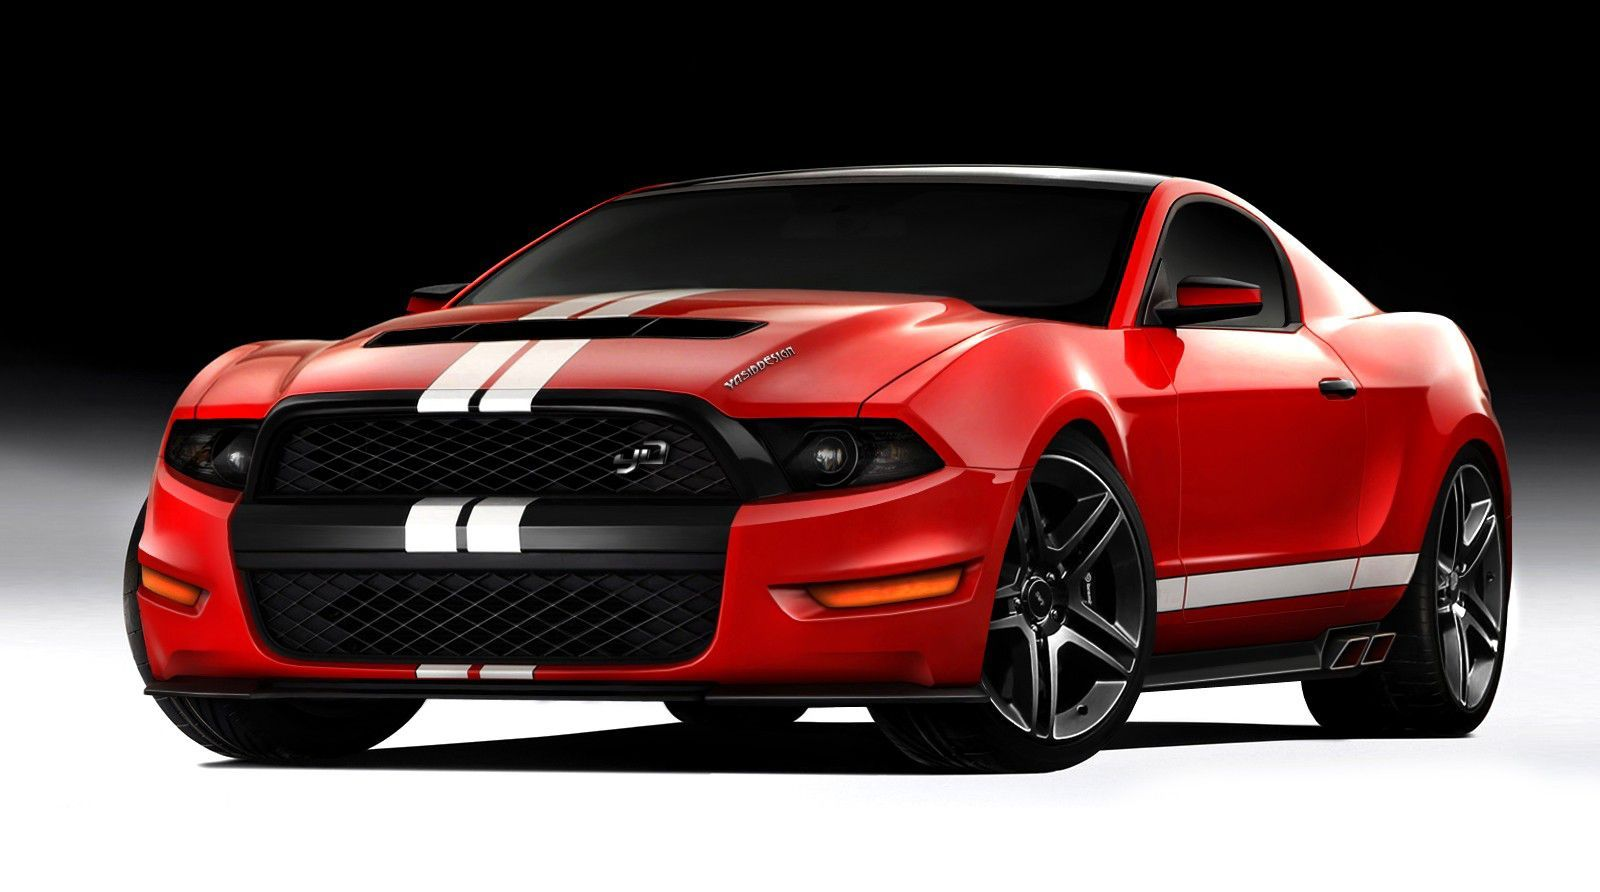 2016 ford mustang interior u s news amp world report - Sexy Cars And Aliens On Pinterest 2014 Mustang V6 Interior